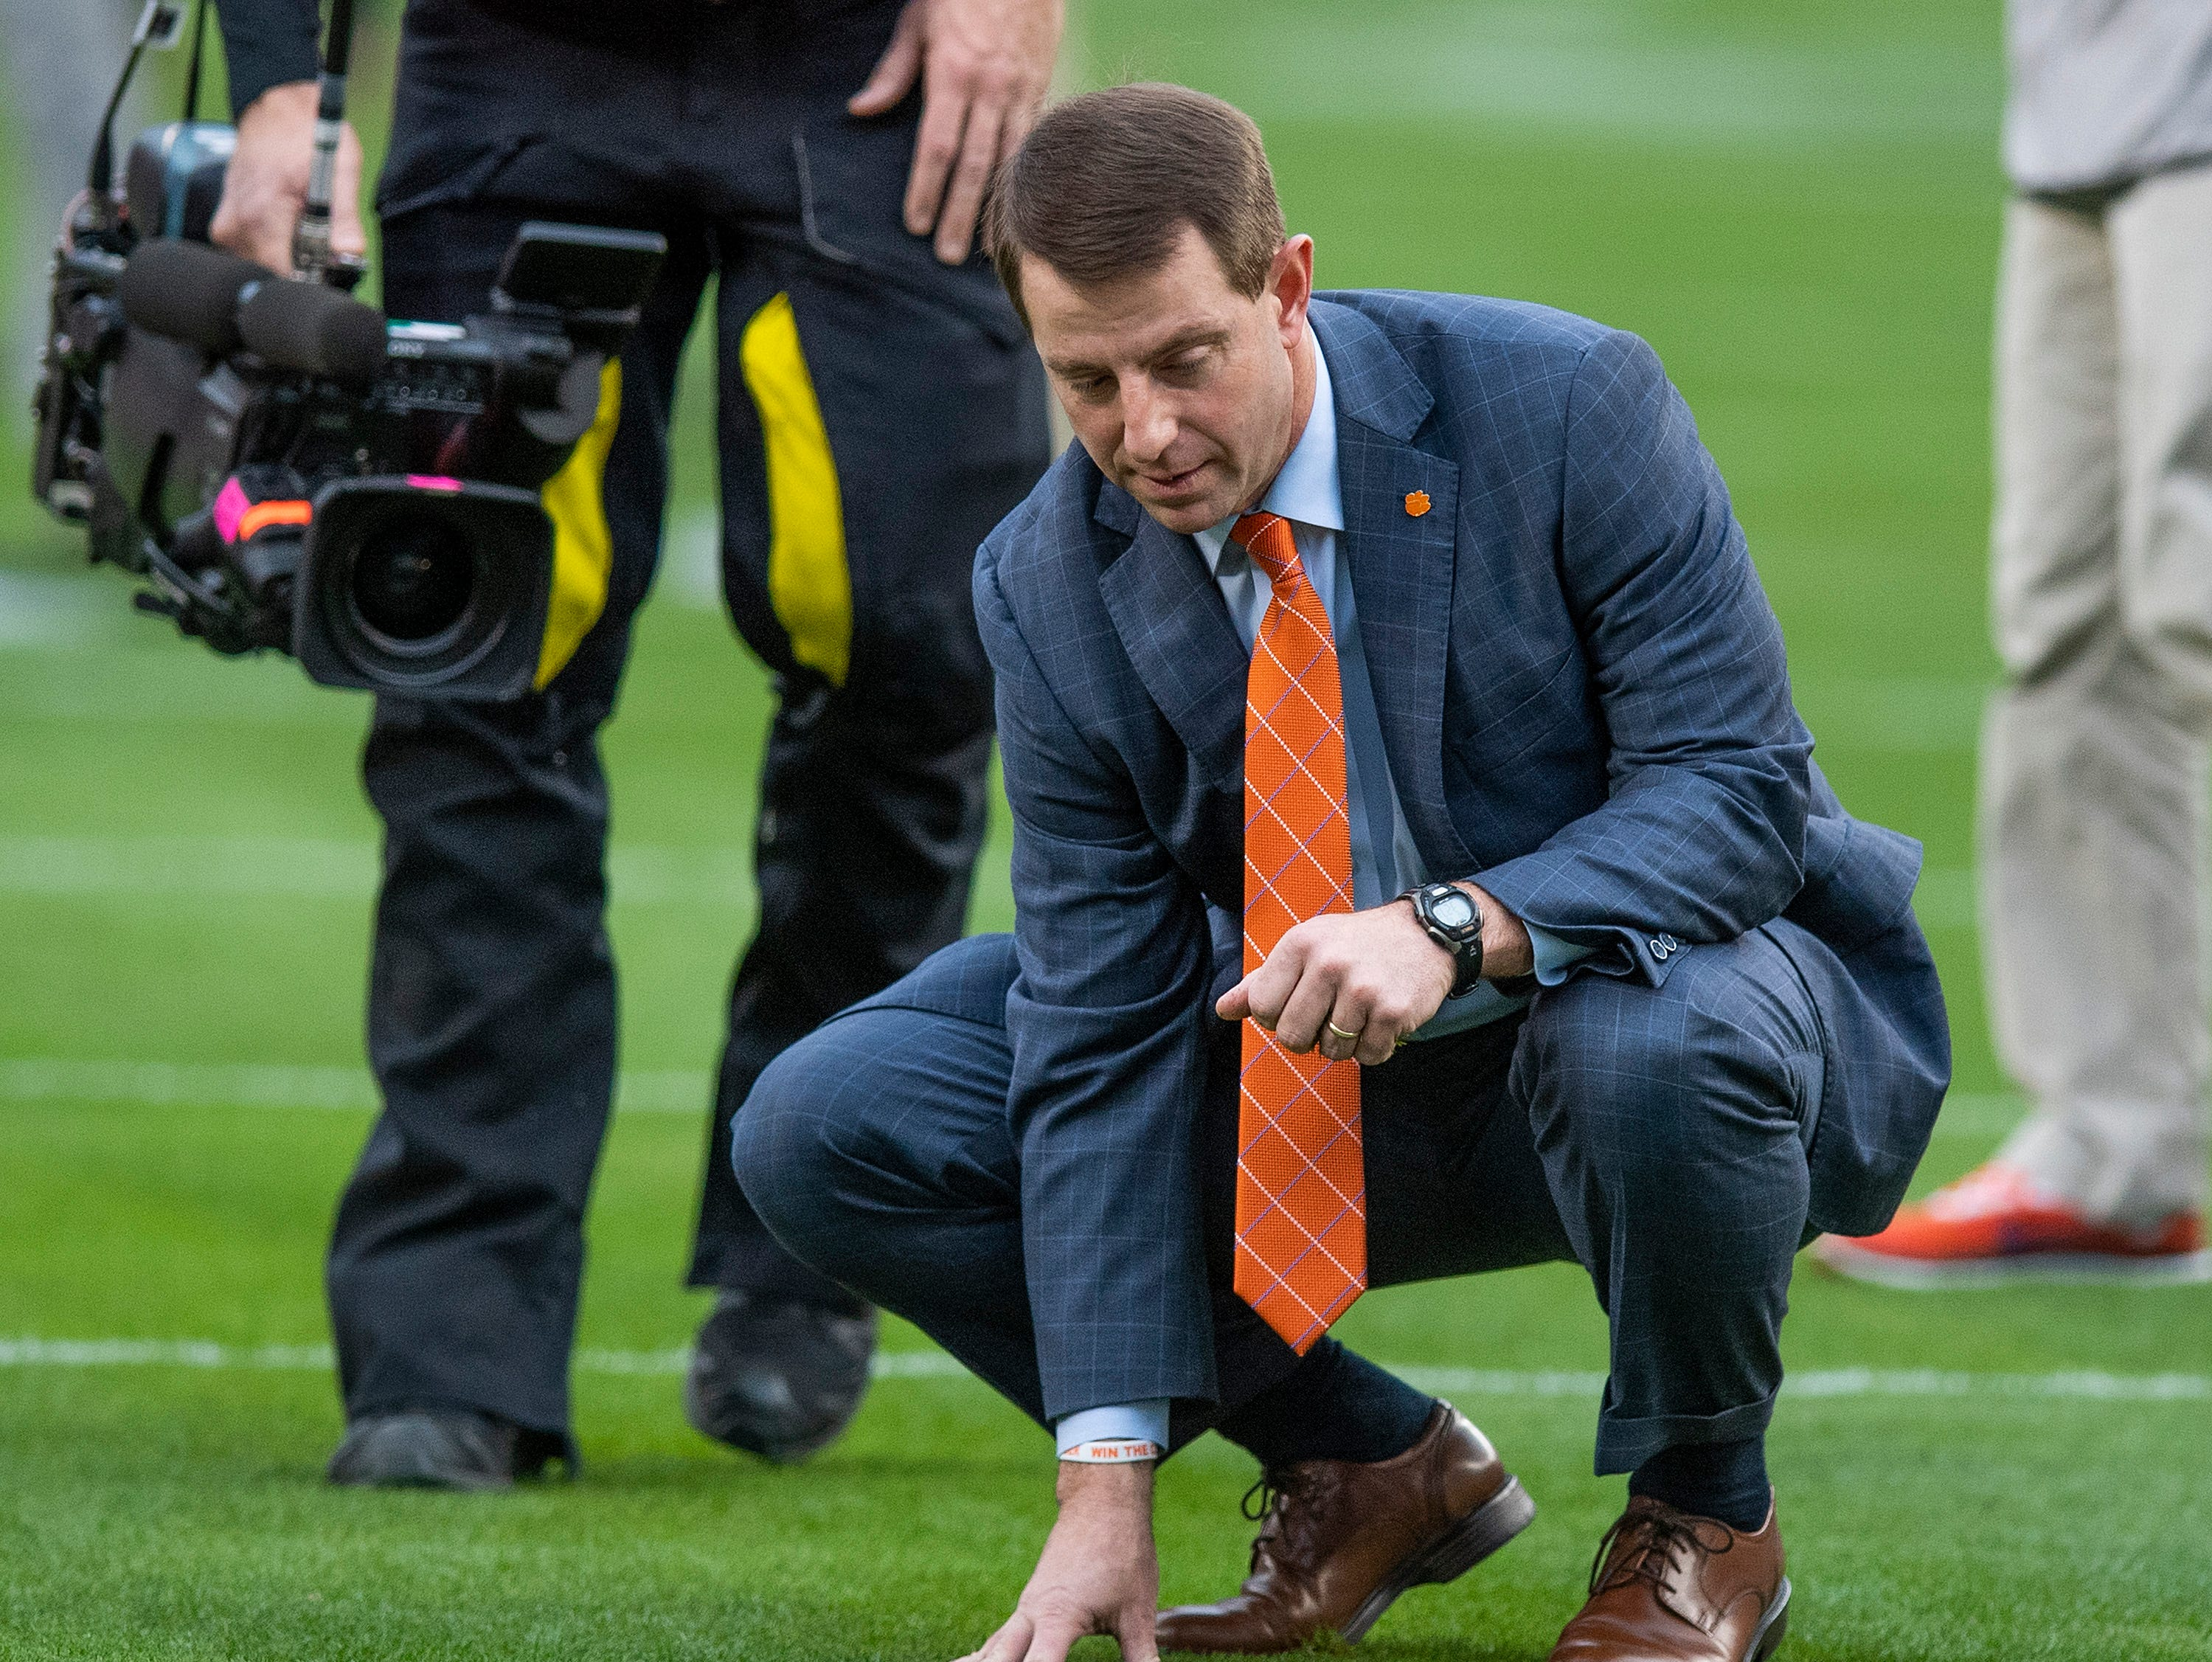 Clemson head coach Dabo Swinney  checks the turf as he arrives with his team for the College Football Playoff National Championship game at Levi's Stadium in Santa Clara, Ca., on Monday January 7, 2019.